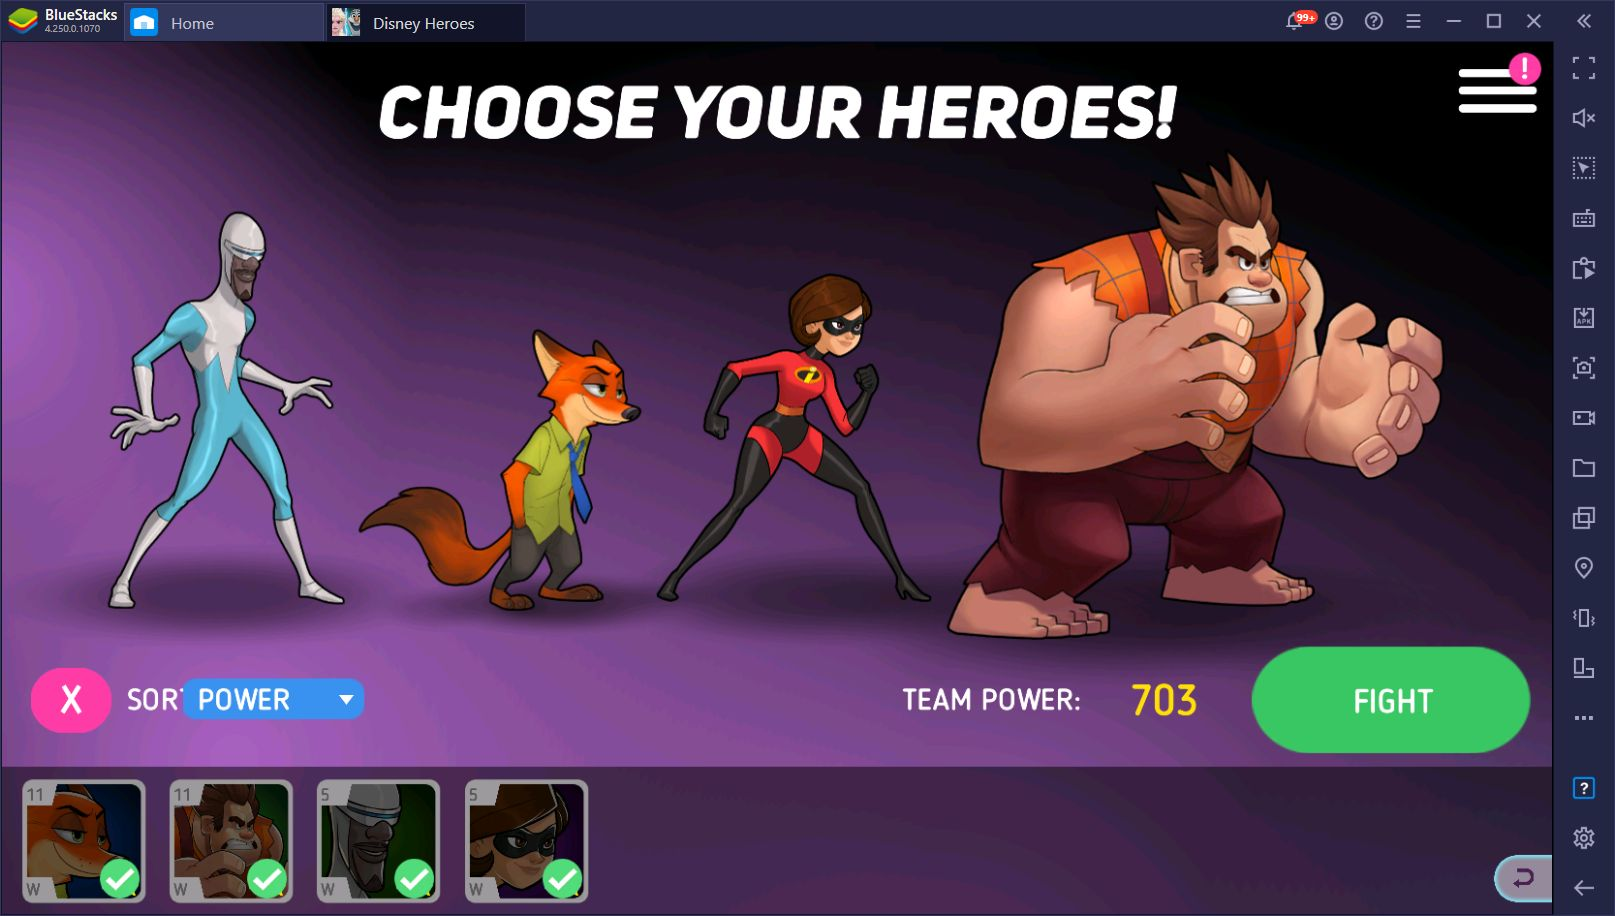 Disney Heroes: Battle Mode Combat Guide – Tips and Tricks to Win all Your Fights